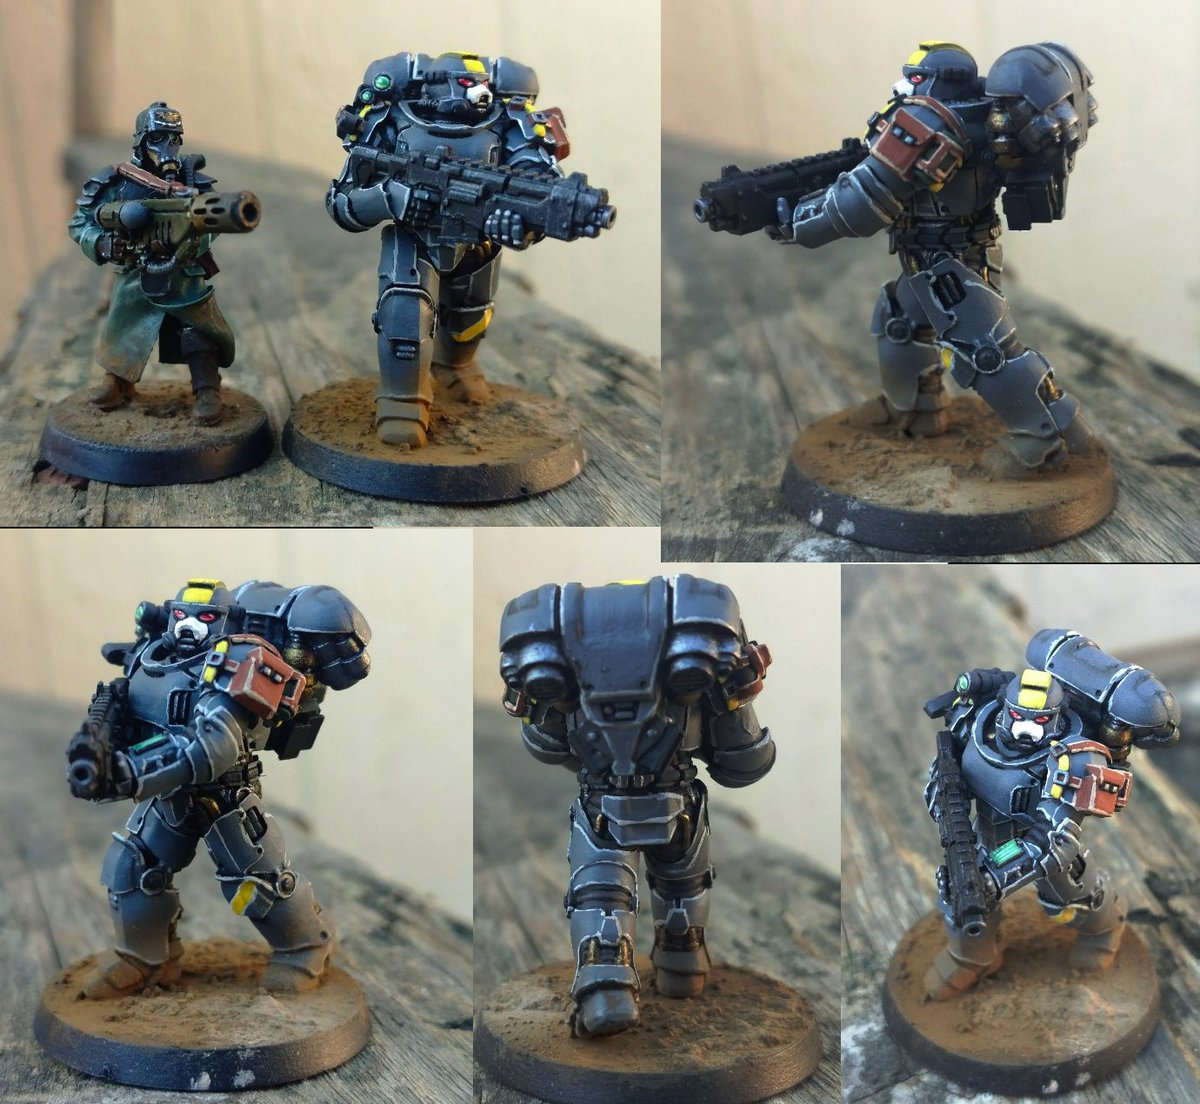 I also bought a knock-off 3rd party Space Marine and this shit is actually GREAT, I bought it specifically because it was TRUE-SCALE™. I just wish I didn't get the tacticool pauldrons, they're a little too busy lmao. pic.twitter.com/JH5hDllW9L